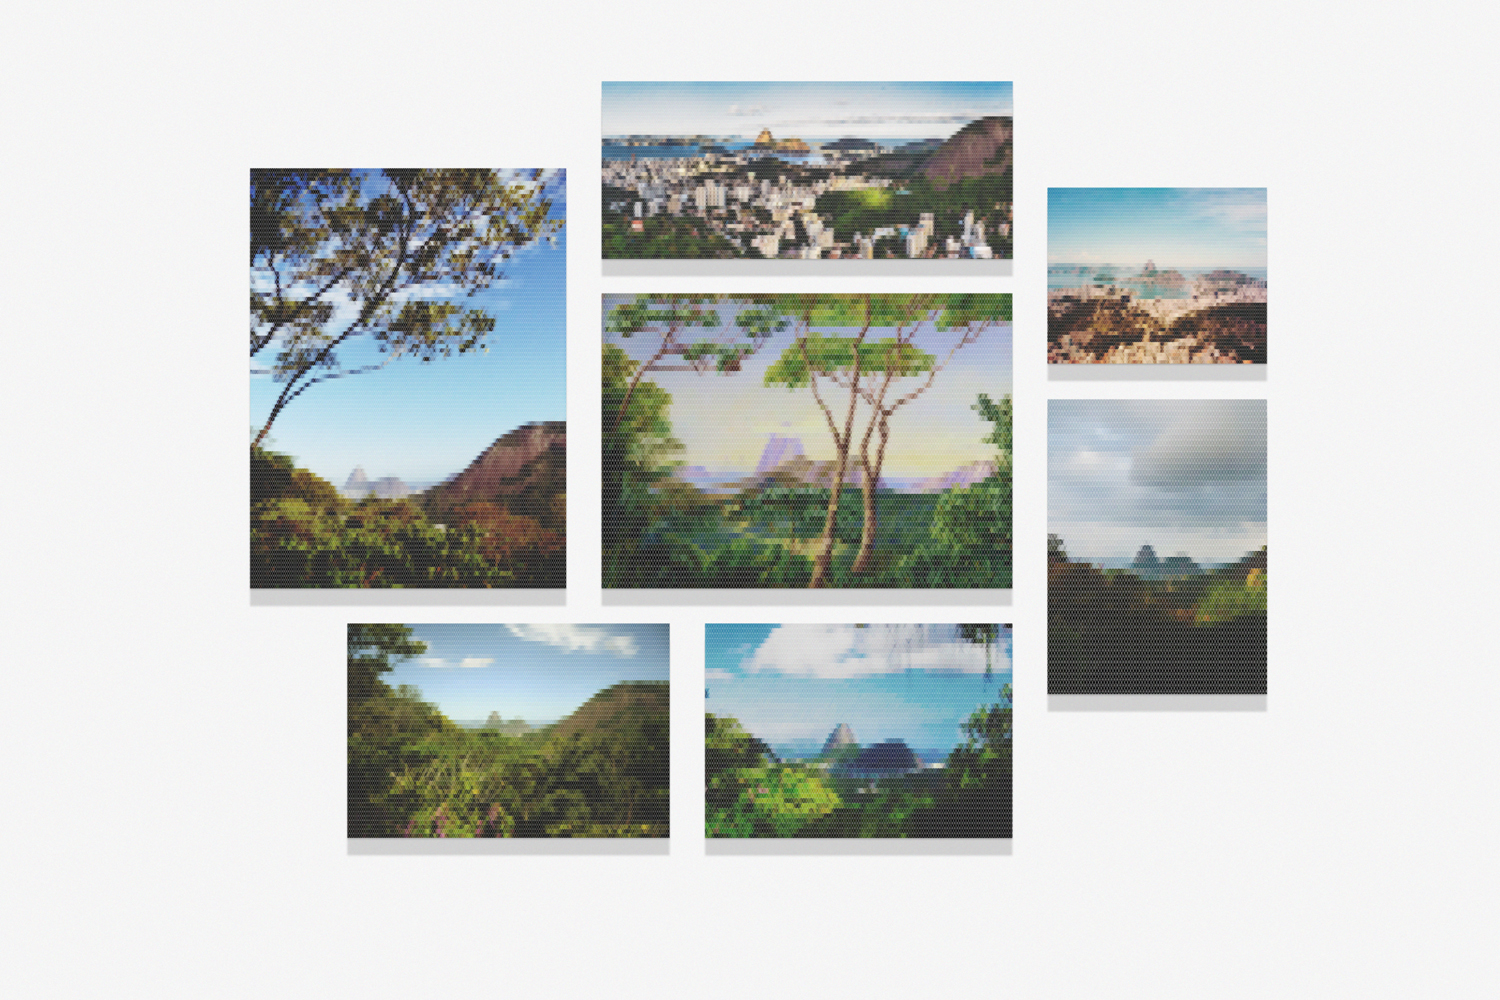 View of the Sugarloaf Mountain, from the Aqueduct Road (Santa Tereza)   • 2010/2015  •   Print on methacrylate and print on cotton paper   • Dimensions variable